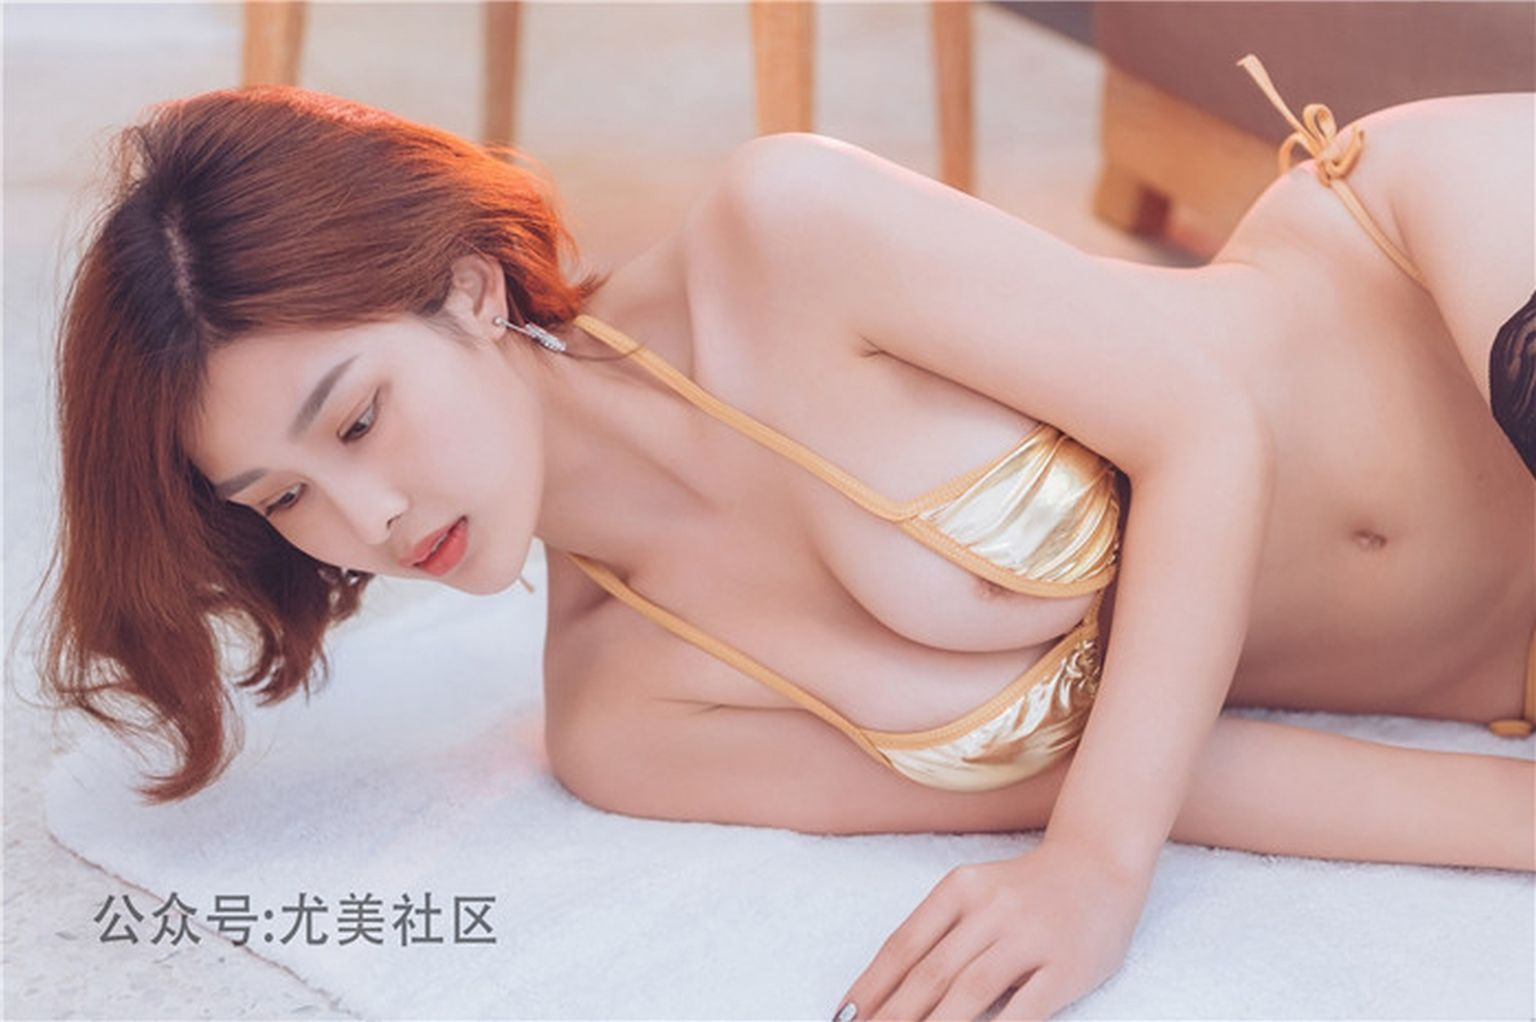 Chinese Girl Yan Pan Pan 闫盼盼 Nude Photoshoot